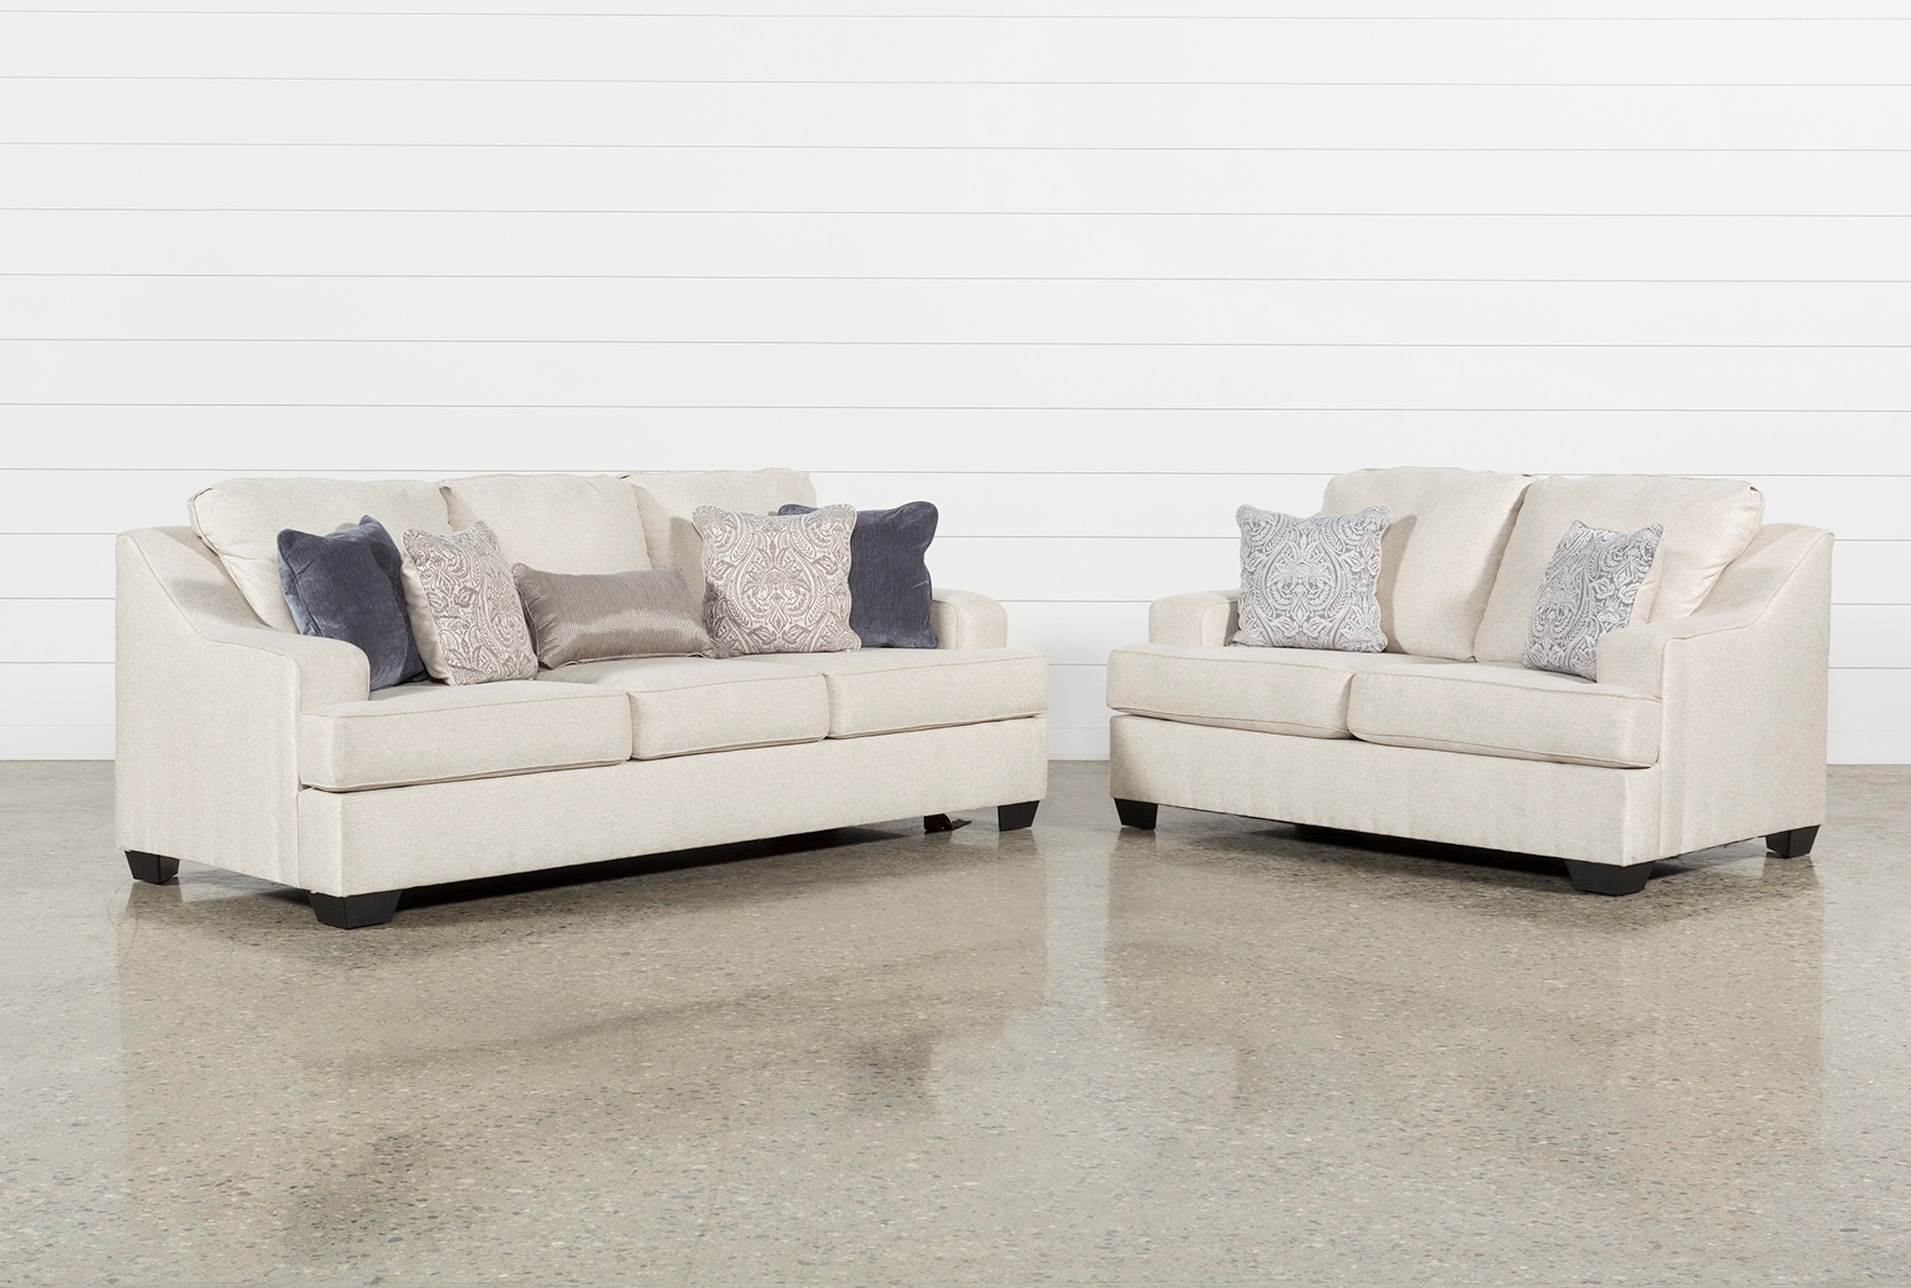 Brumbeck 2 piece living room set qty 1 has been successfully added to your cart